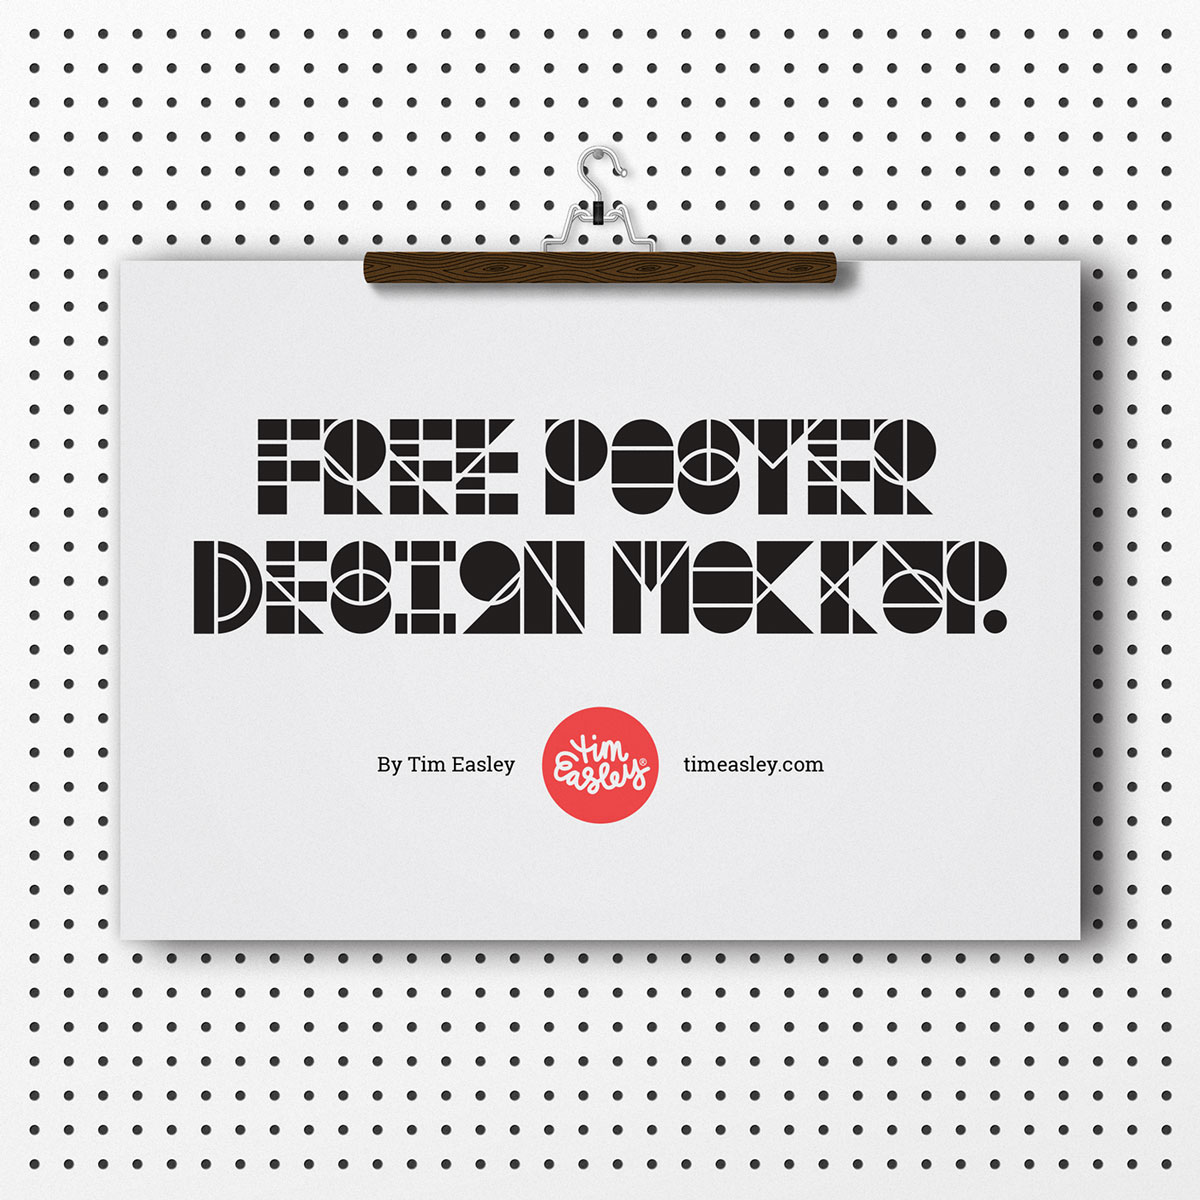 Multipurpose-Poster-Mockups-For-Your-Creative-Poster-Designs-600-2